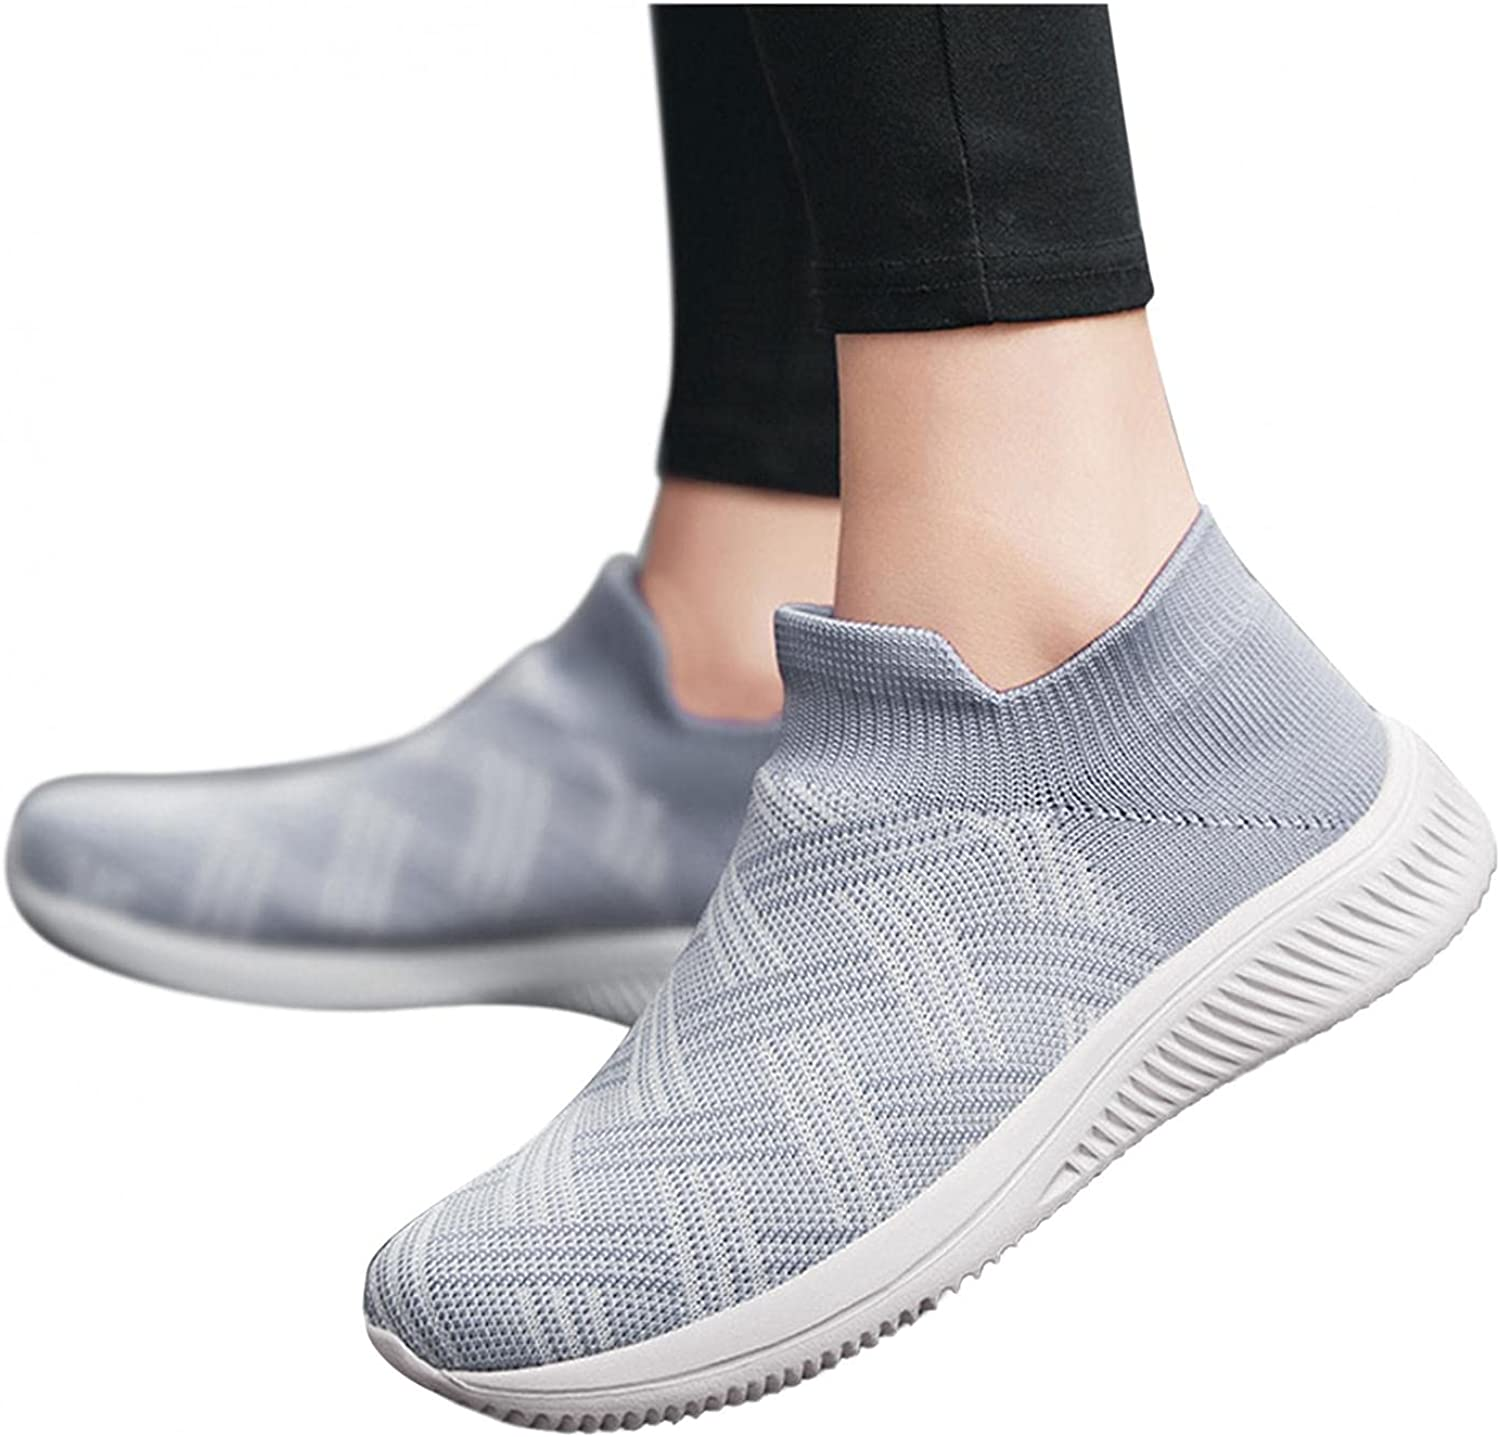 Kaitobe supreme Women's Fashion Sneakers Comfort Mesh Sales for sale Breathable Womens